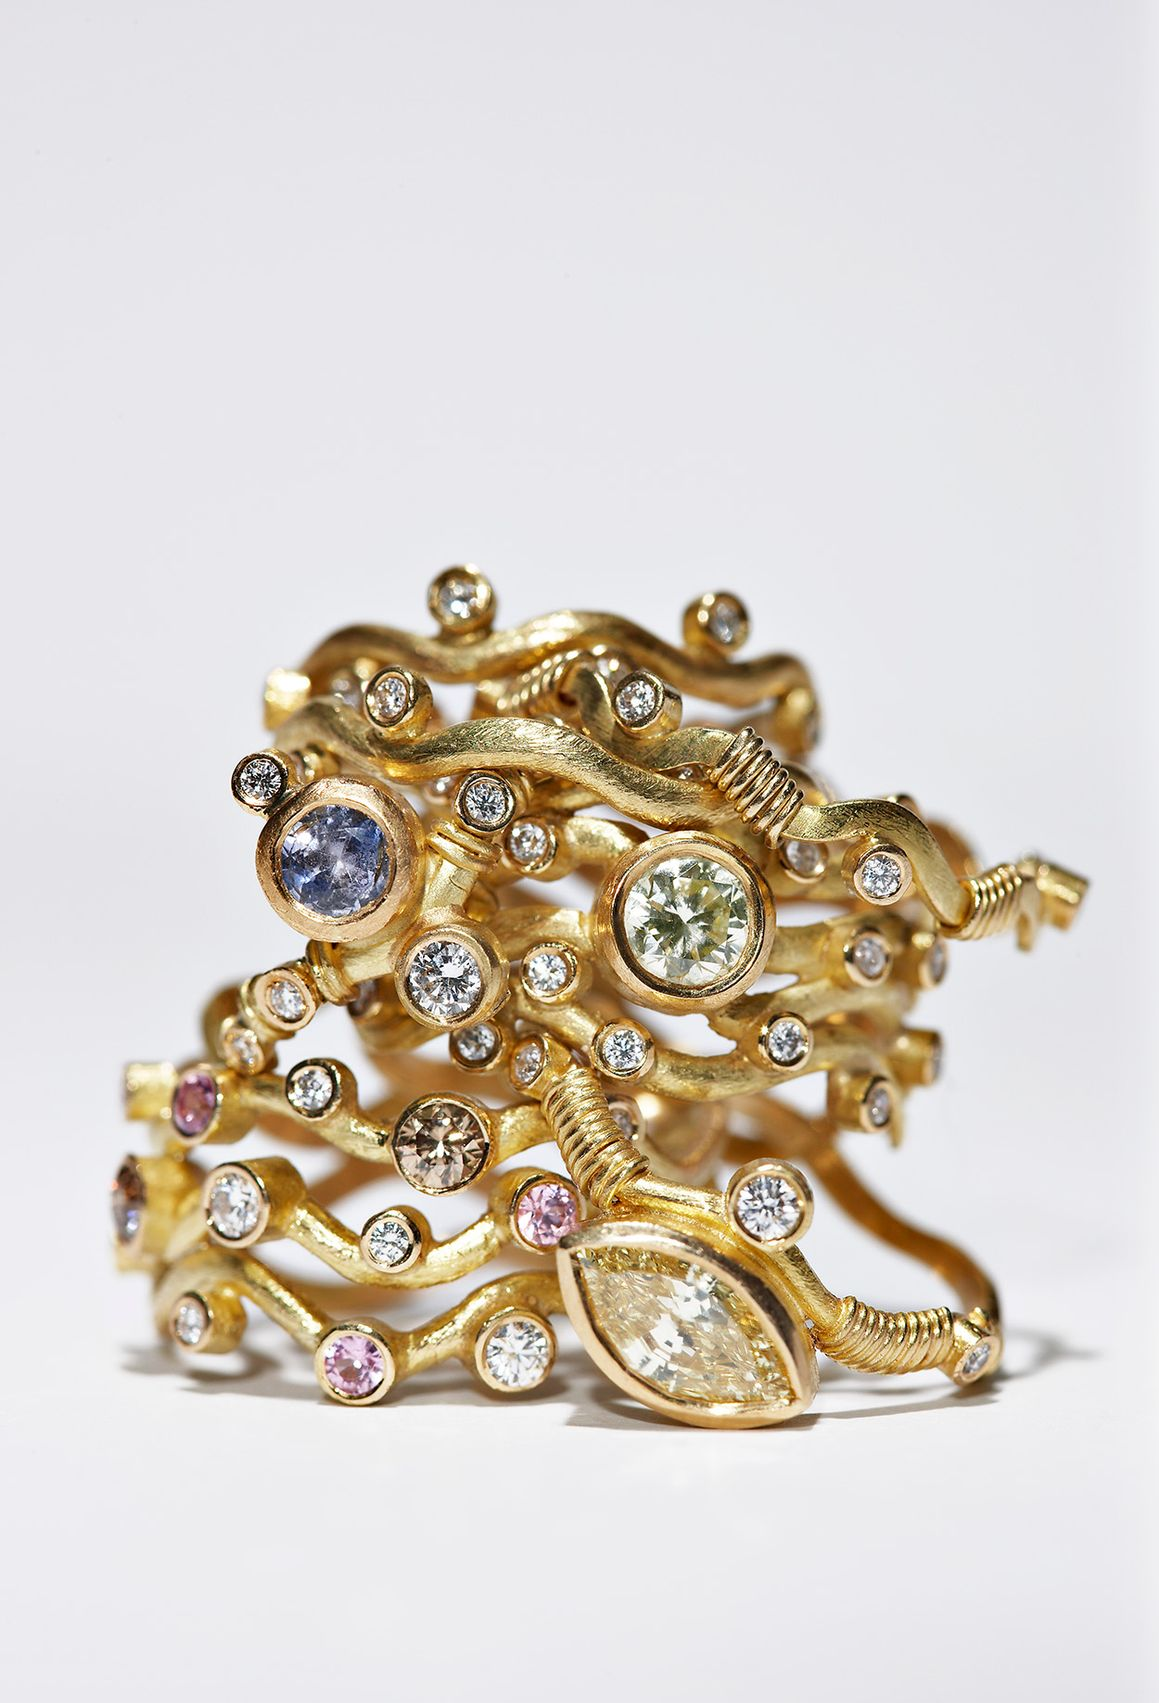 Louise Grønlykke jeweler gold rings